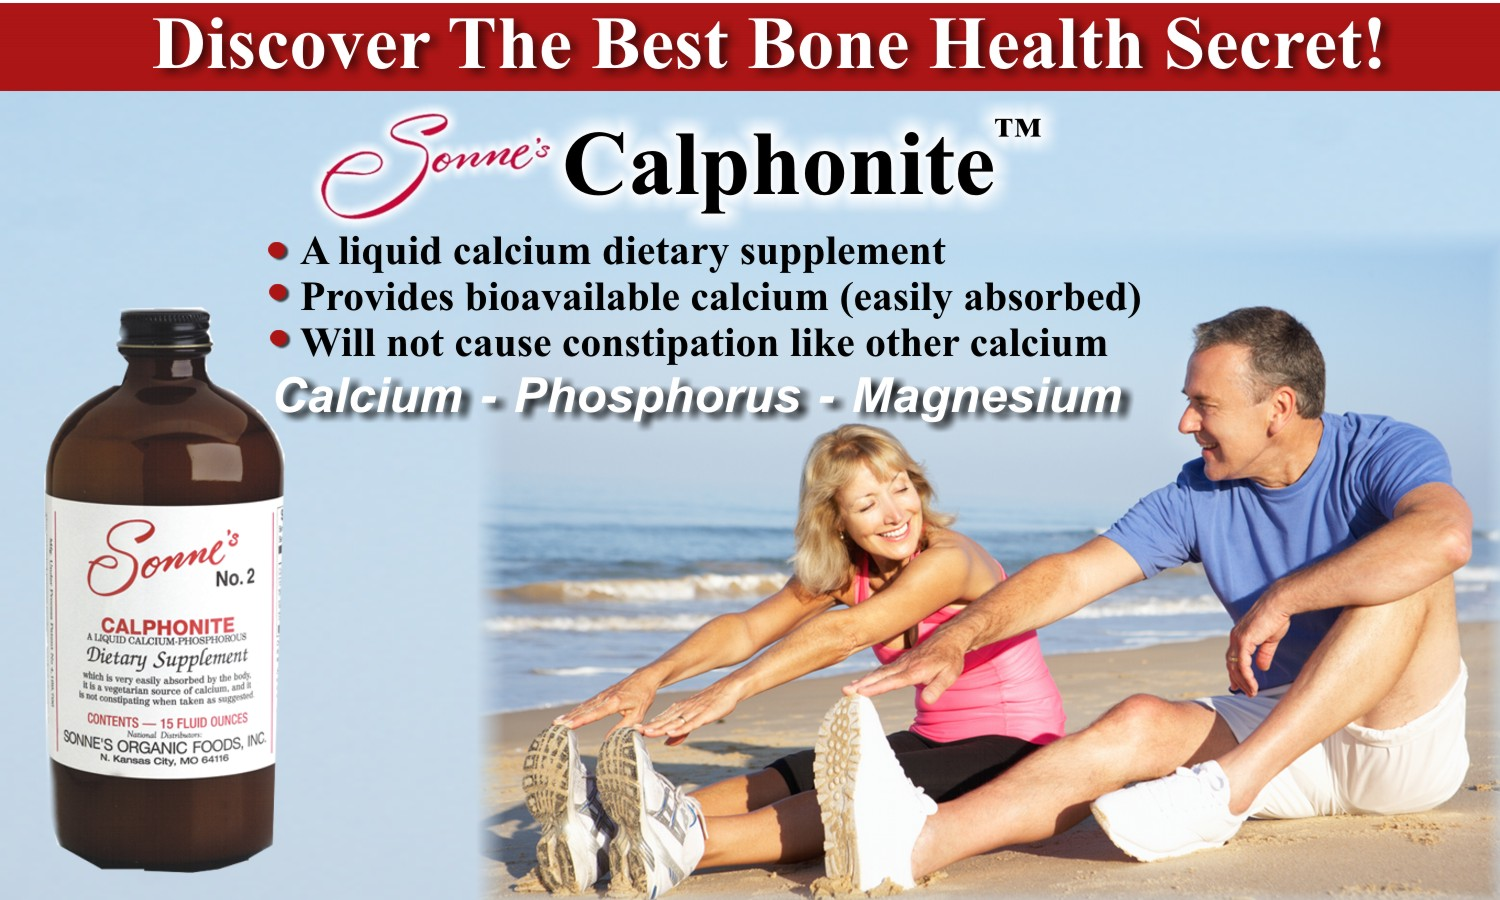 CALCIUM BONE HEALTH SECRET AD